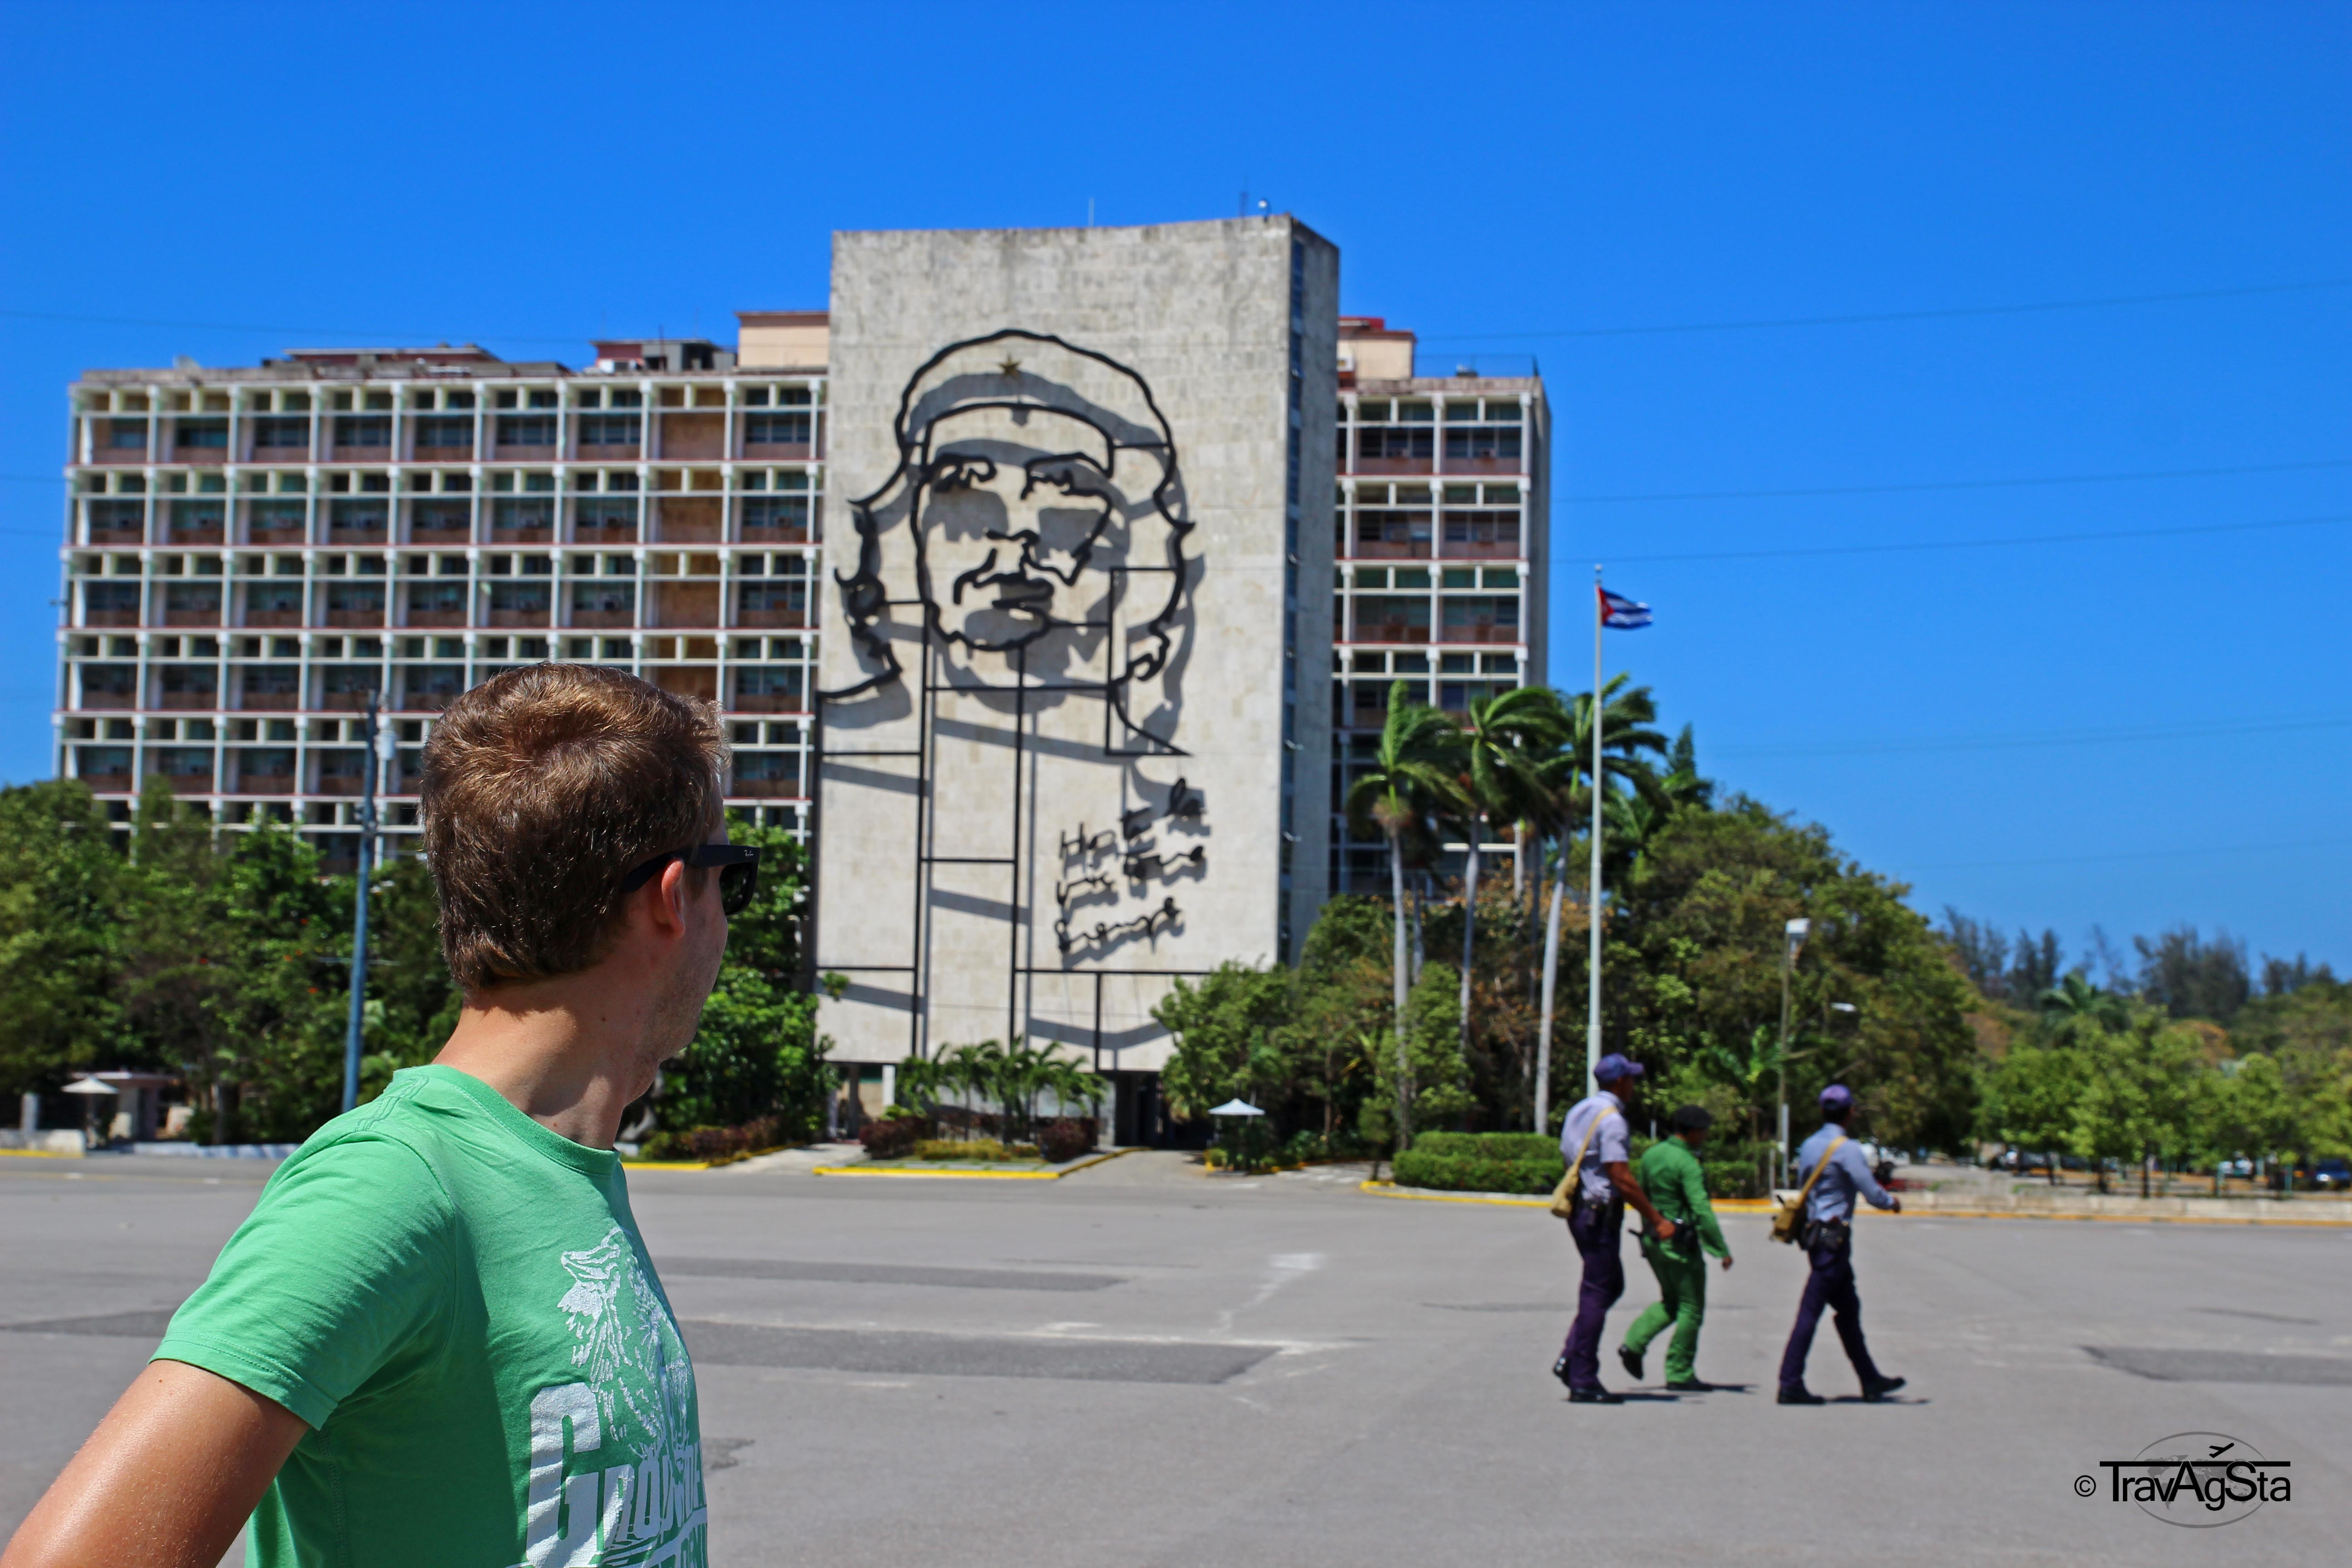 La Habana – Sightseeing in a dilapidated city!